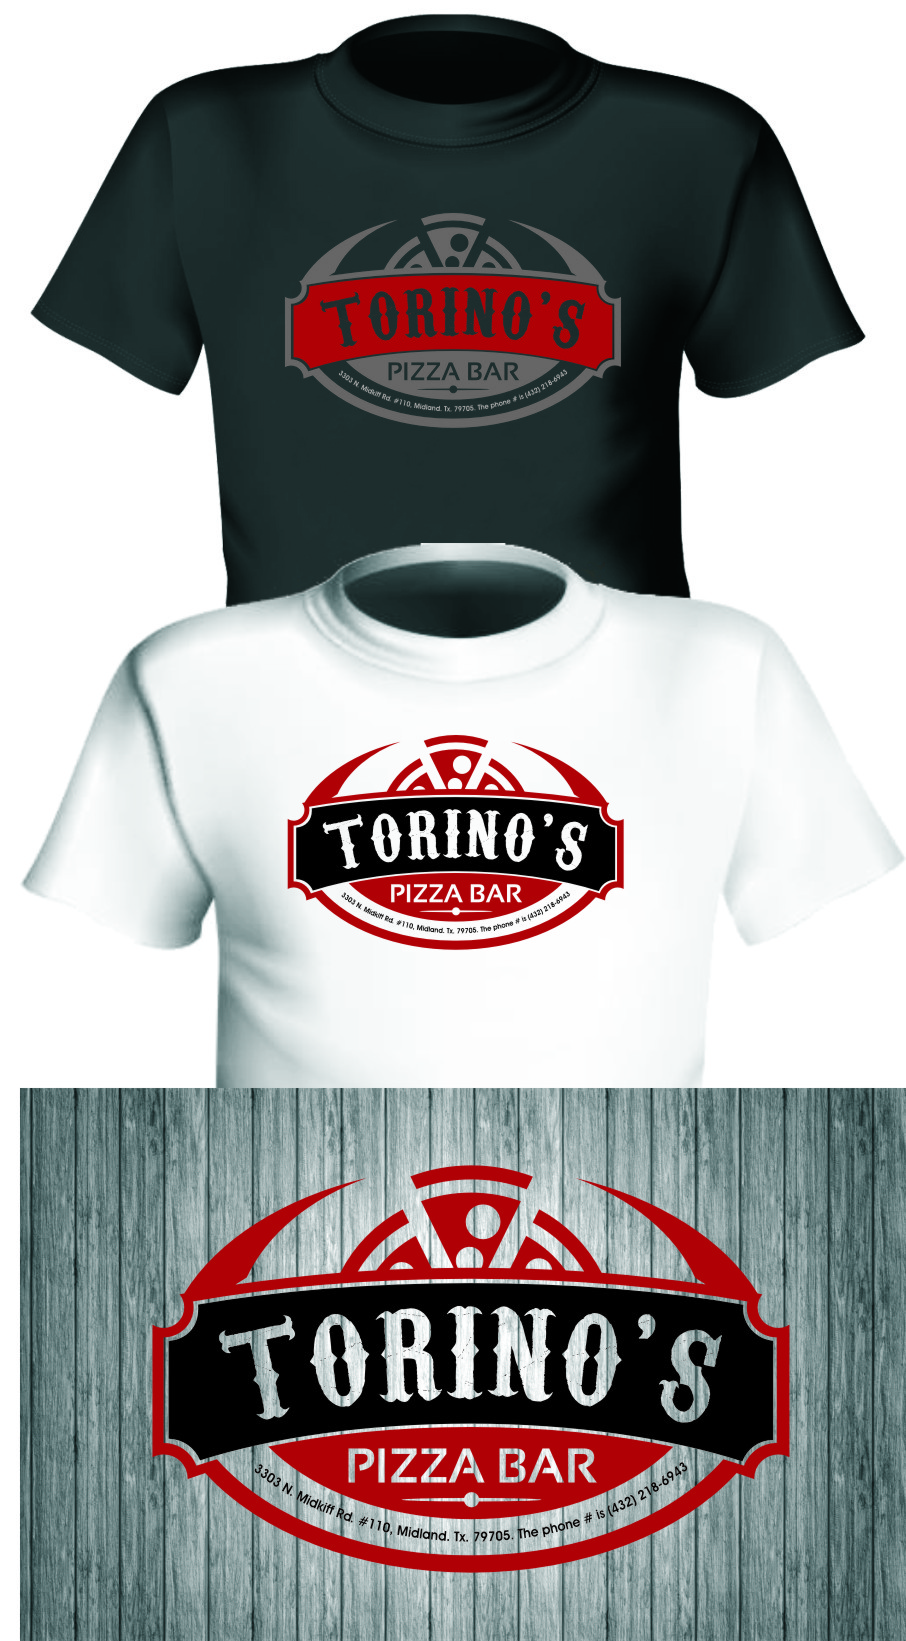 Custom Design by RasYa Muhammad Athaya - Entry No. 43 in the Custom Design Contest Torino's Pizza Bar Custom Design.